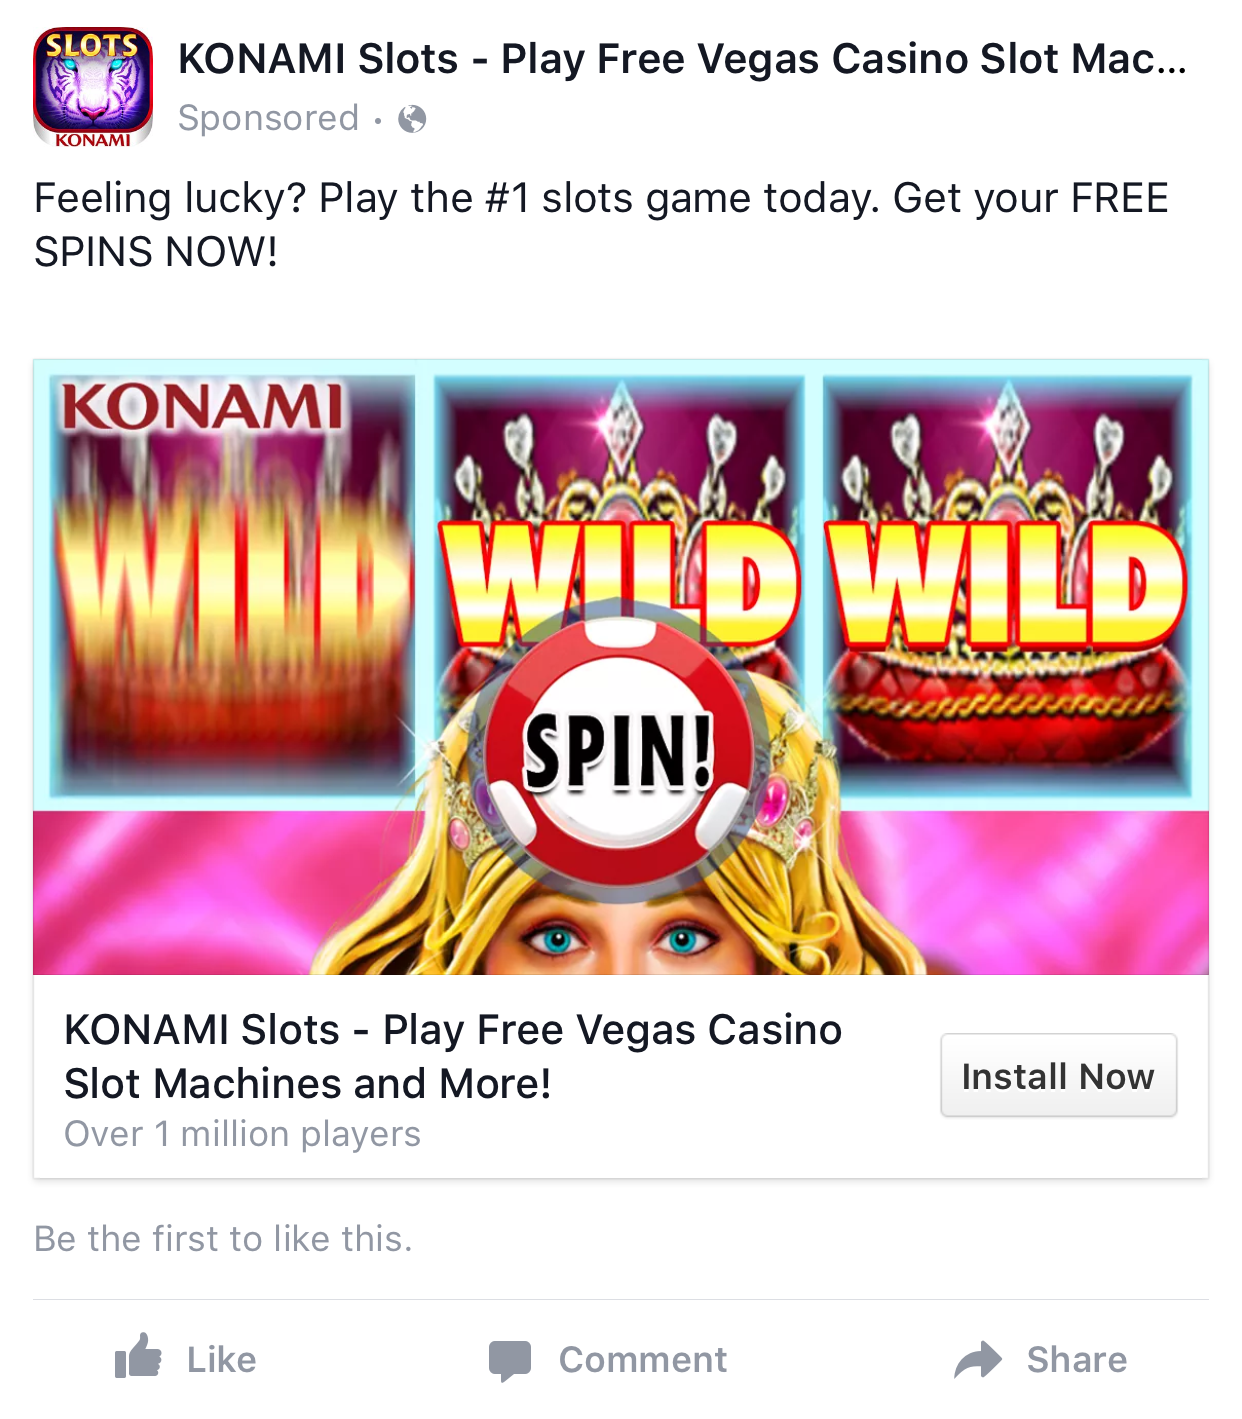 Free casino slots on facebook